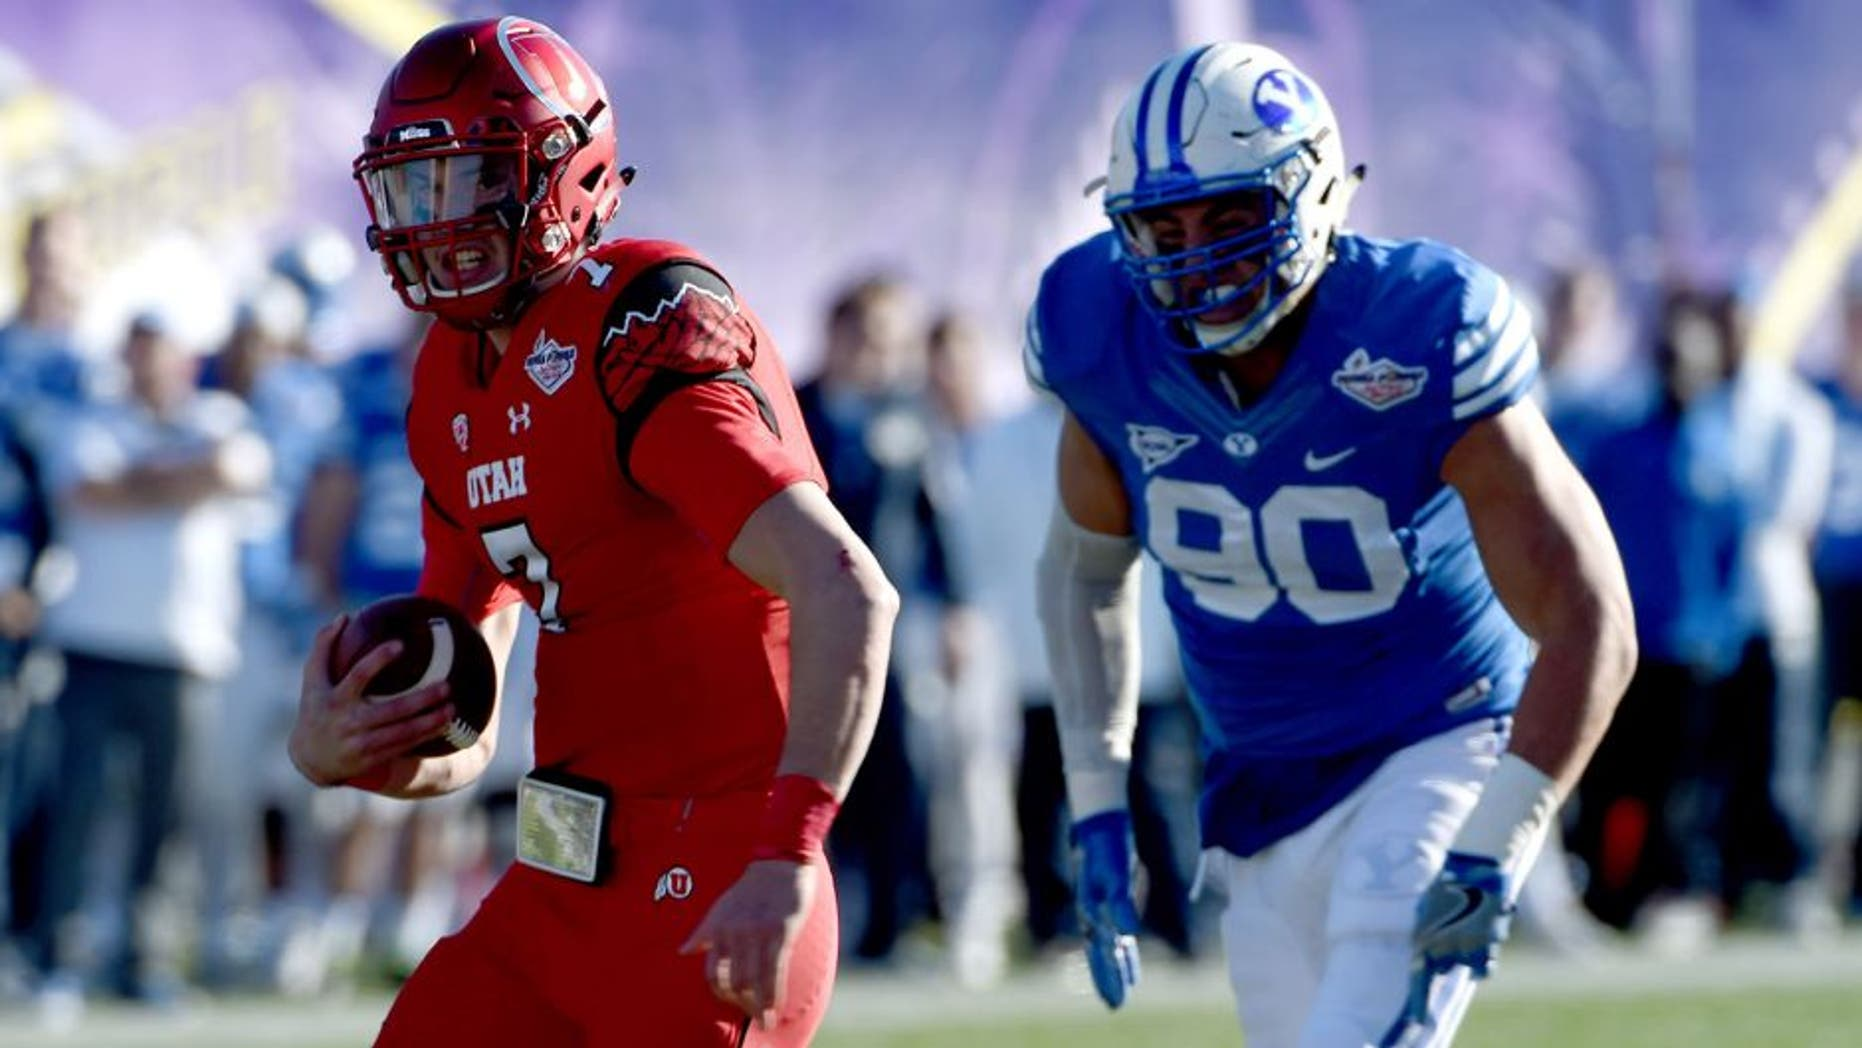 Dec 19, 2015; Las Vegas, NV, USA; Utah Utes quarterback Travis Wilson (7) rushes up the middle as the Utes face off against BYU in the Las Vegas Bowl at Sam Boyd Stadium. Mandatory Credit: Stephen R. Sylvanie-USA TODAY Sports